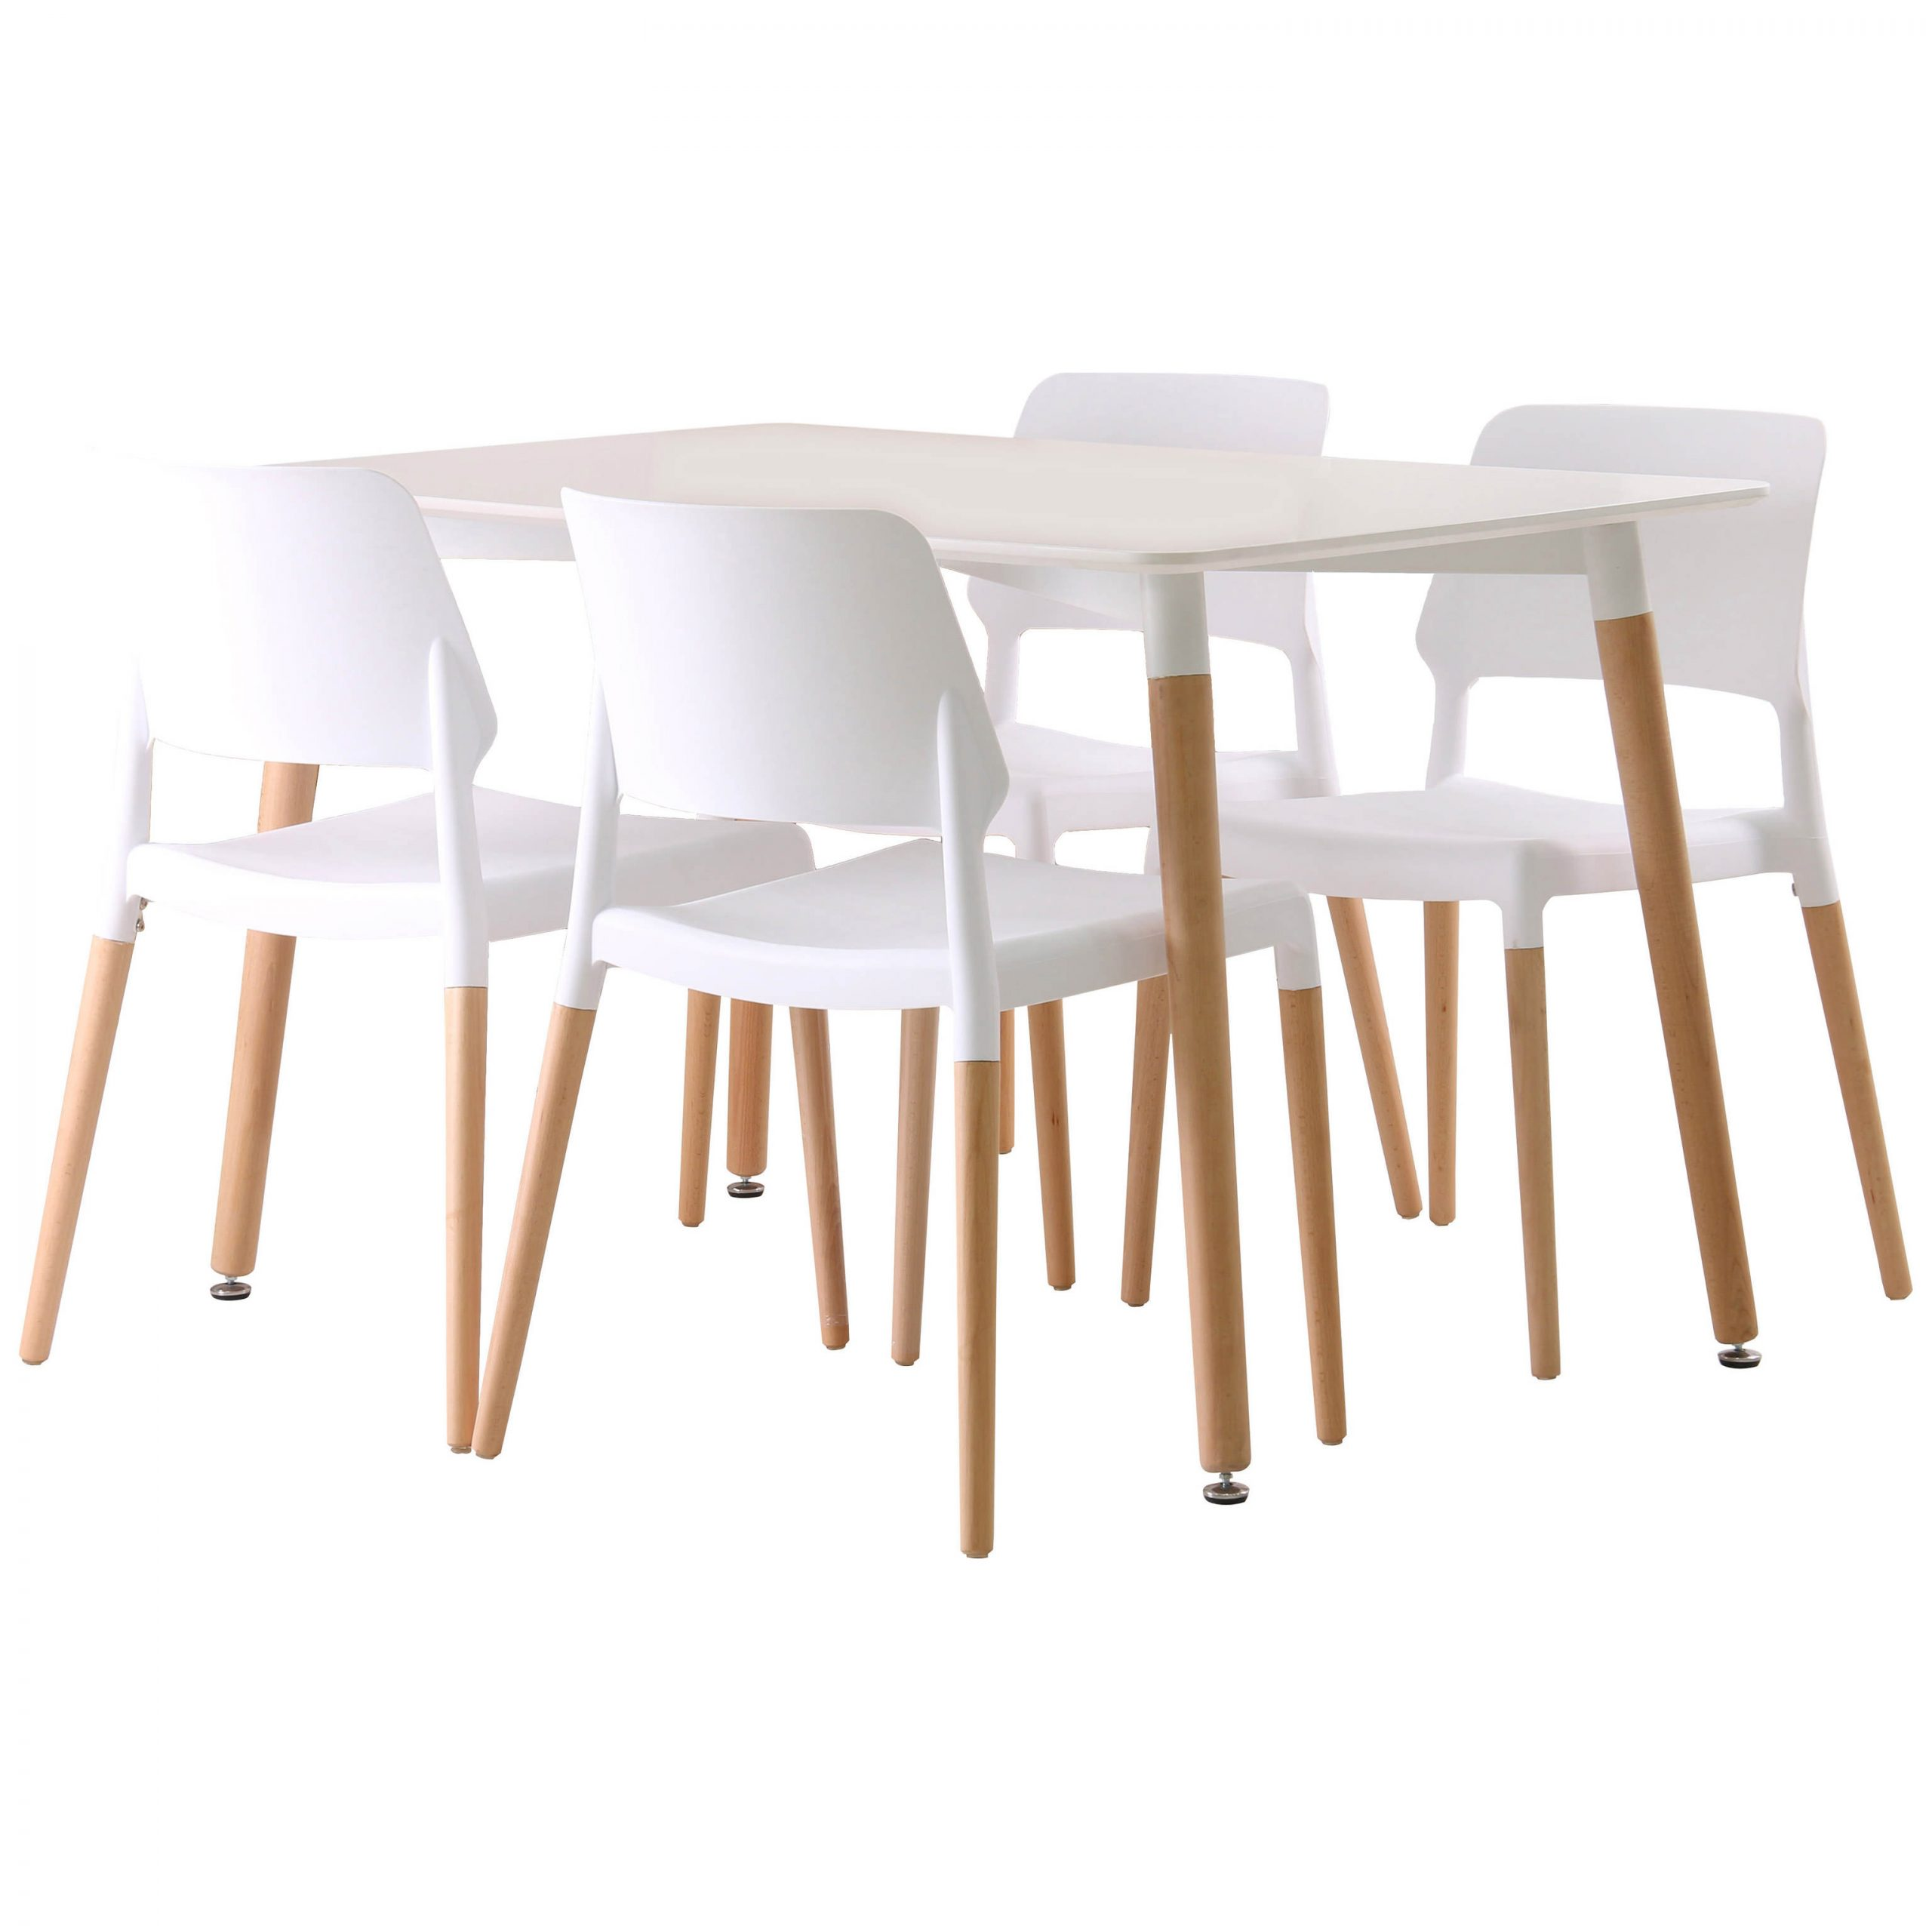 Preferred Details About Rectangle Dining Table And Chair Set With 4 Seats (View 22 of 25)